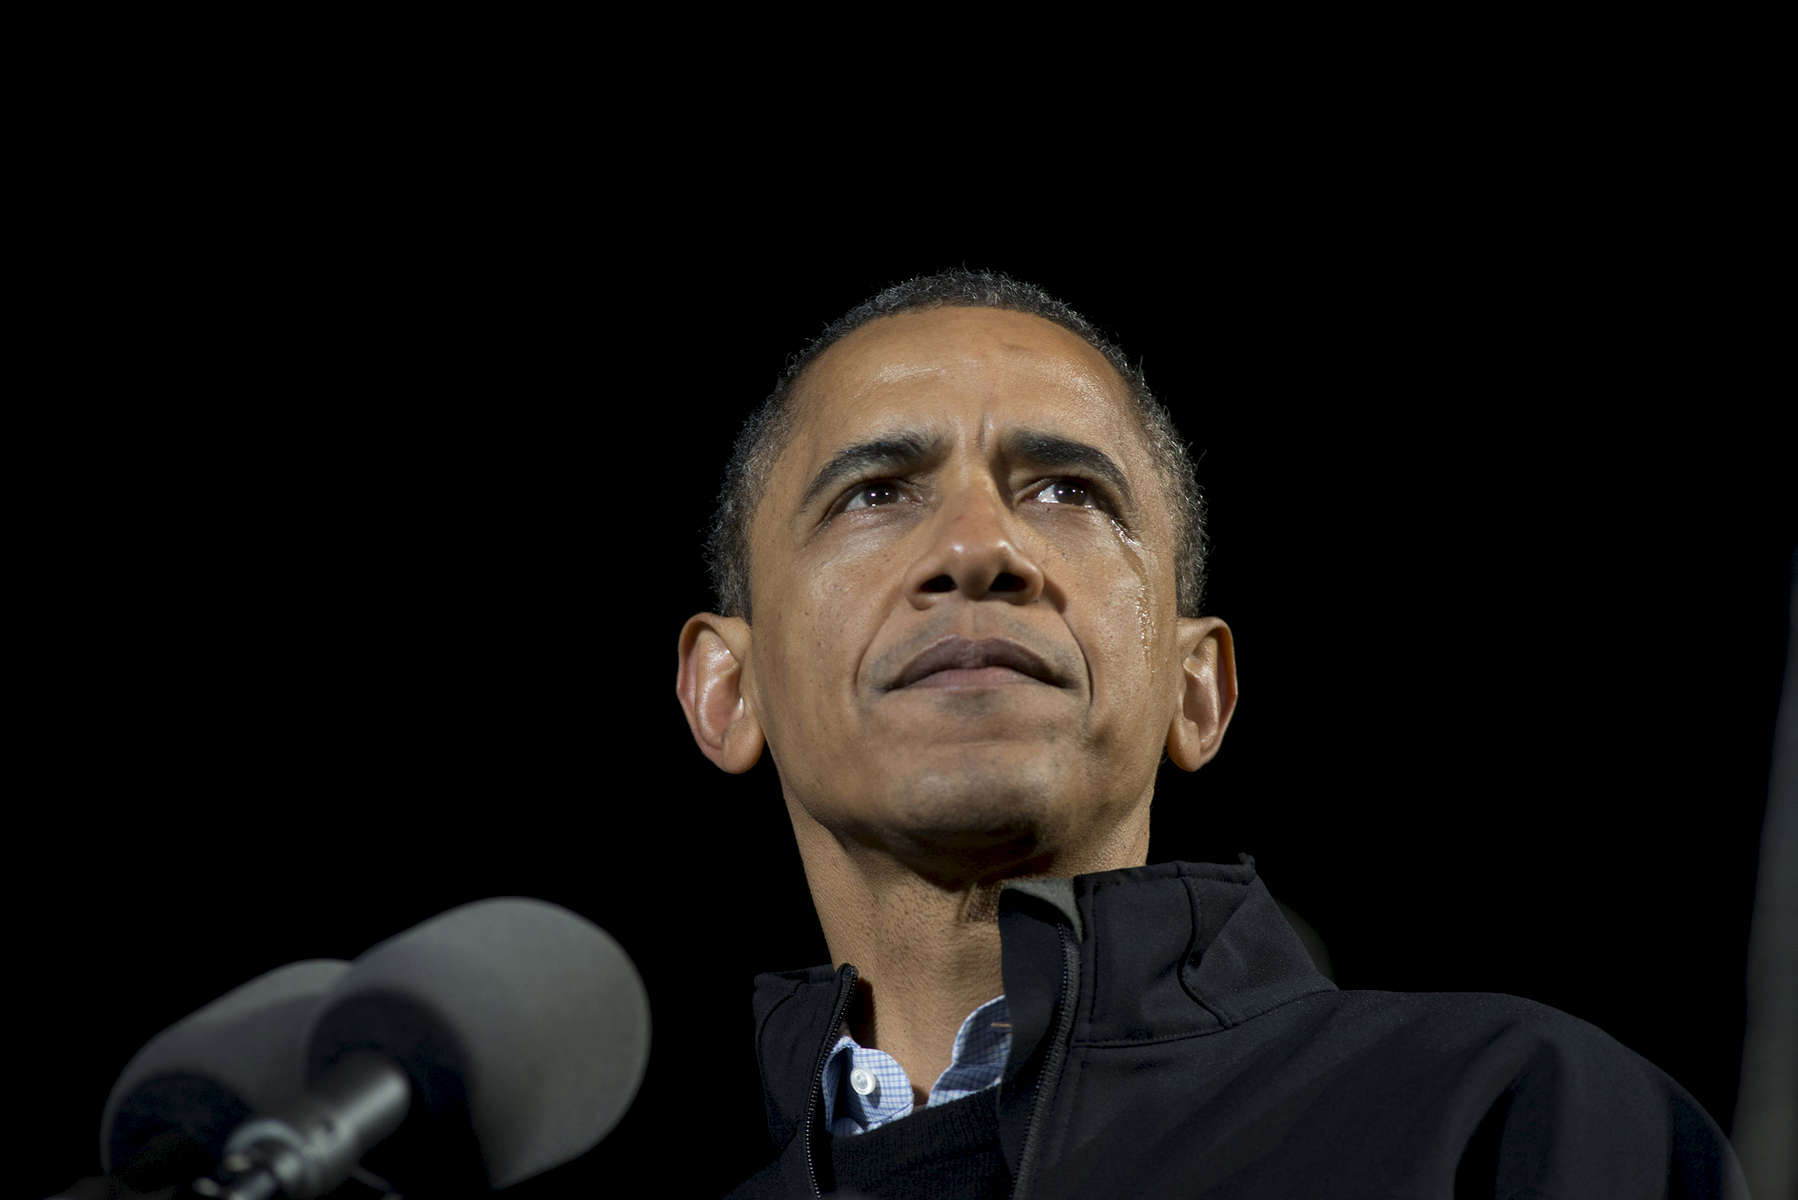 November 5, 2012 - Des Moines, IA:  President Barack Obama weeps as he speaks at his last ever campaign event the night before the 2012 election. (Scout Tufankjian for Obama for America/Polaris)